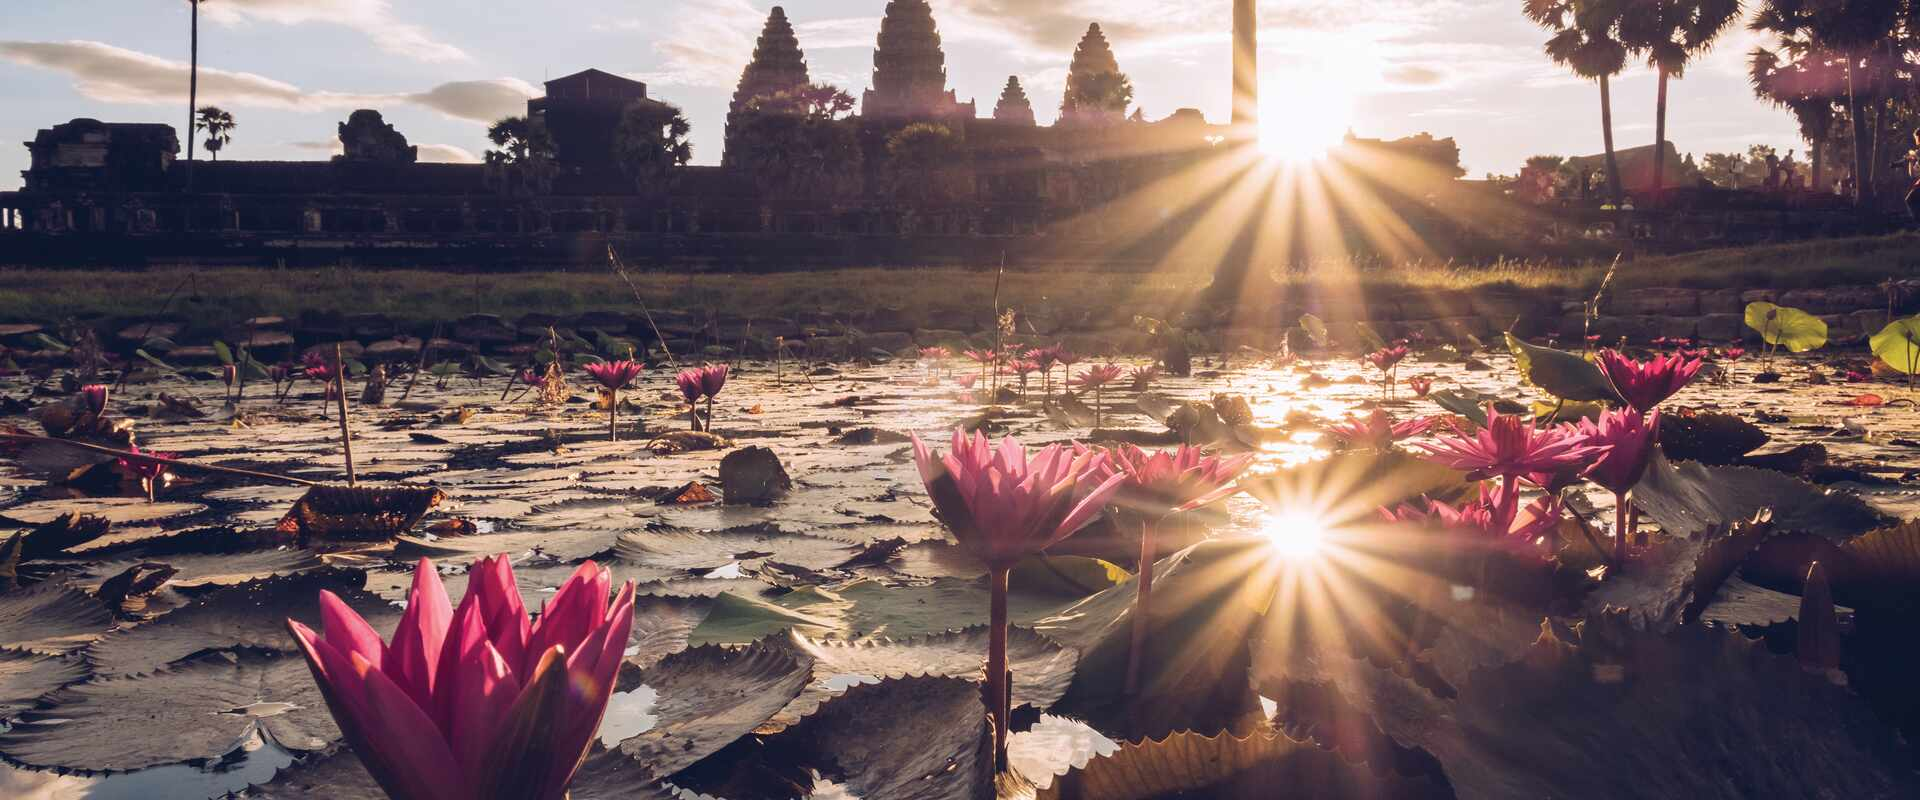 Pink lotus flower on a lake with Angkor Wat outline in the suns rays